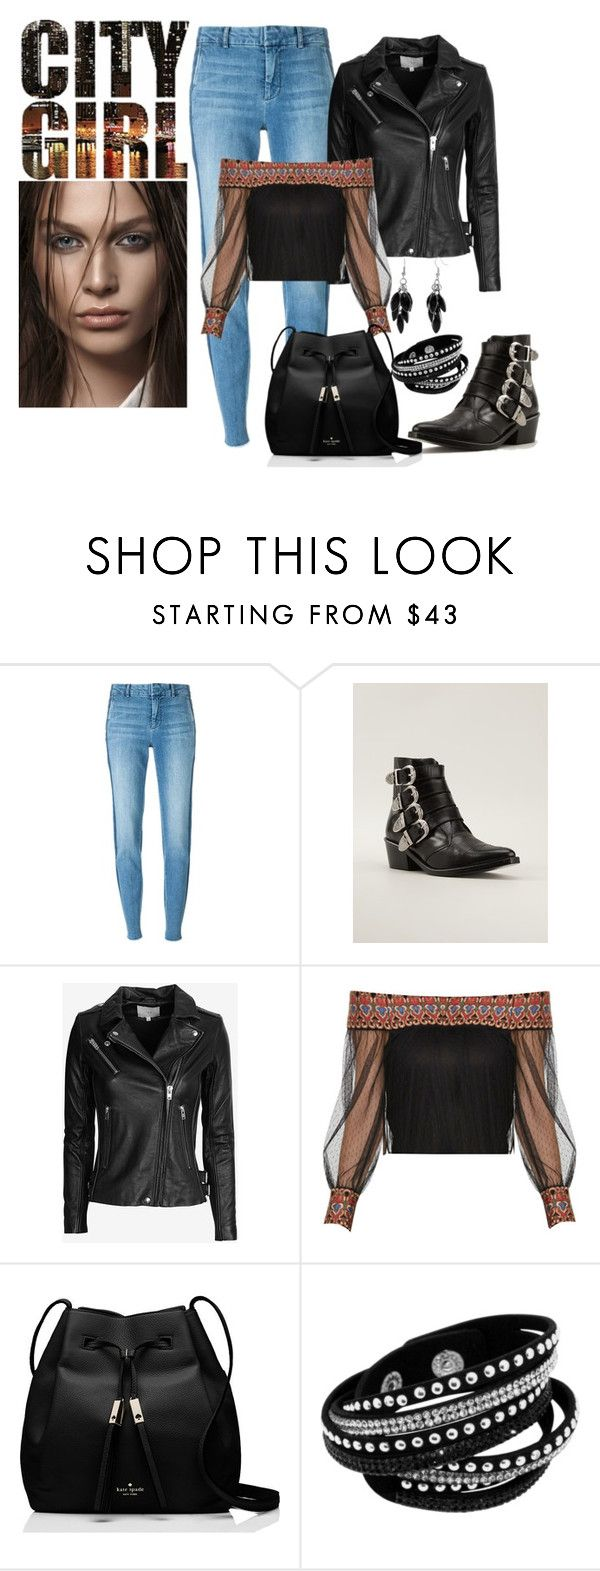 """""""City Girl"""" by penelopepoppins ❤ liked on Polyvore featuring Vince, Toga, IRO, Kate Spade and Alexa Starr"""